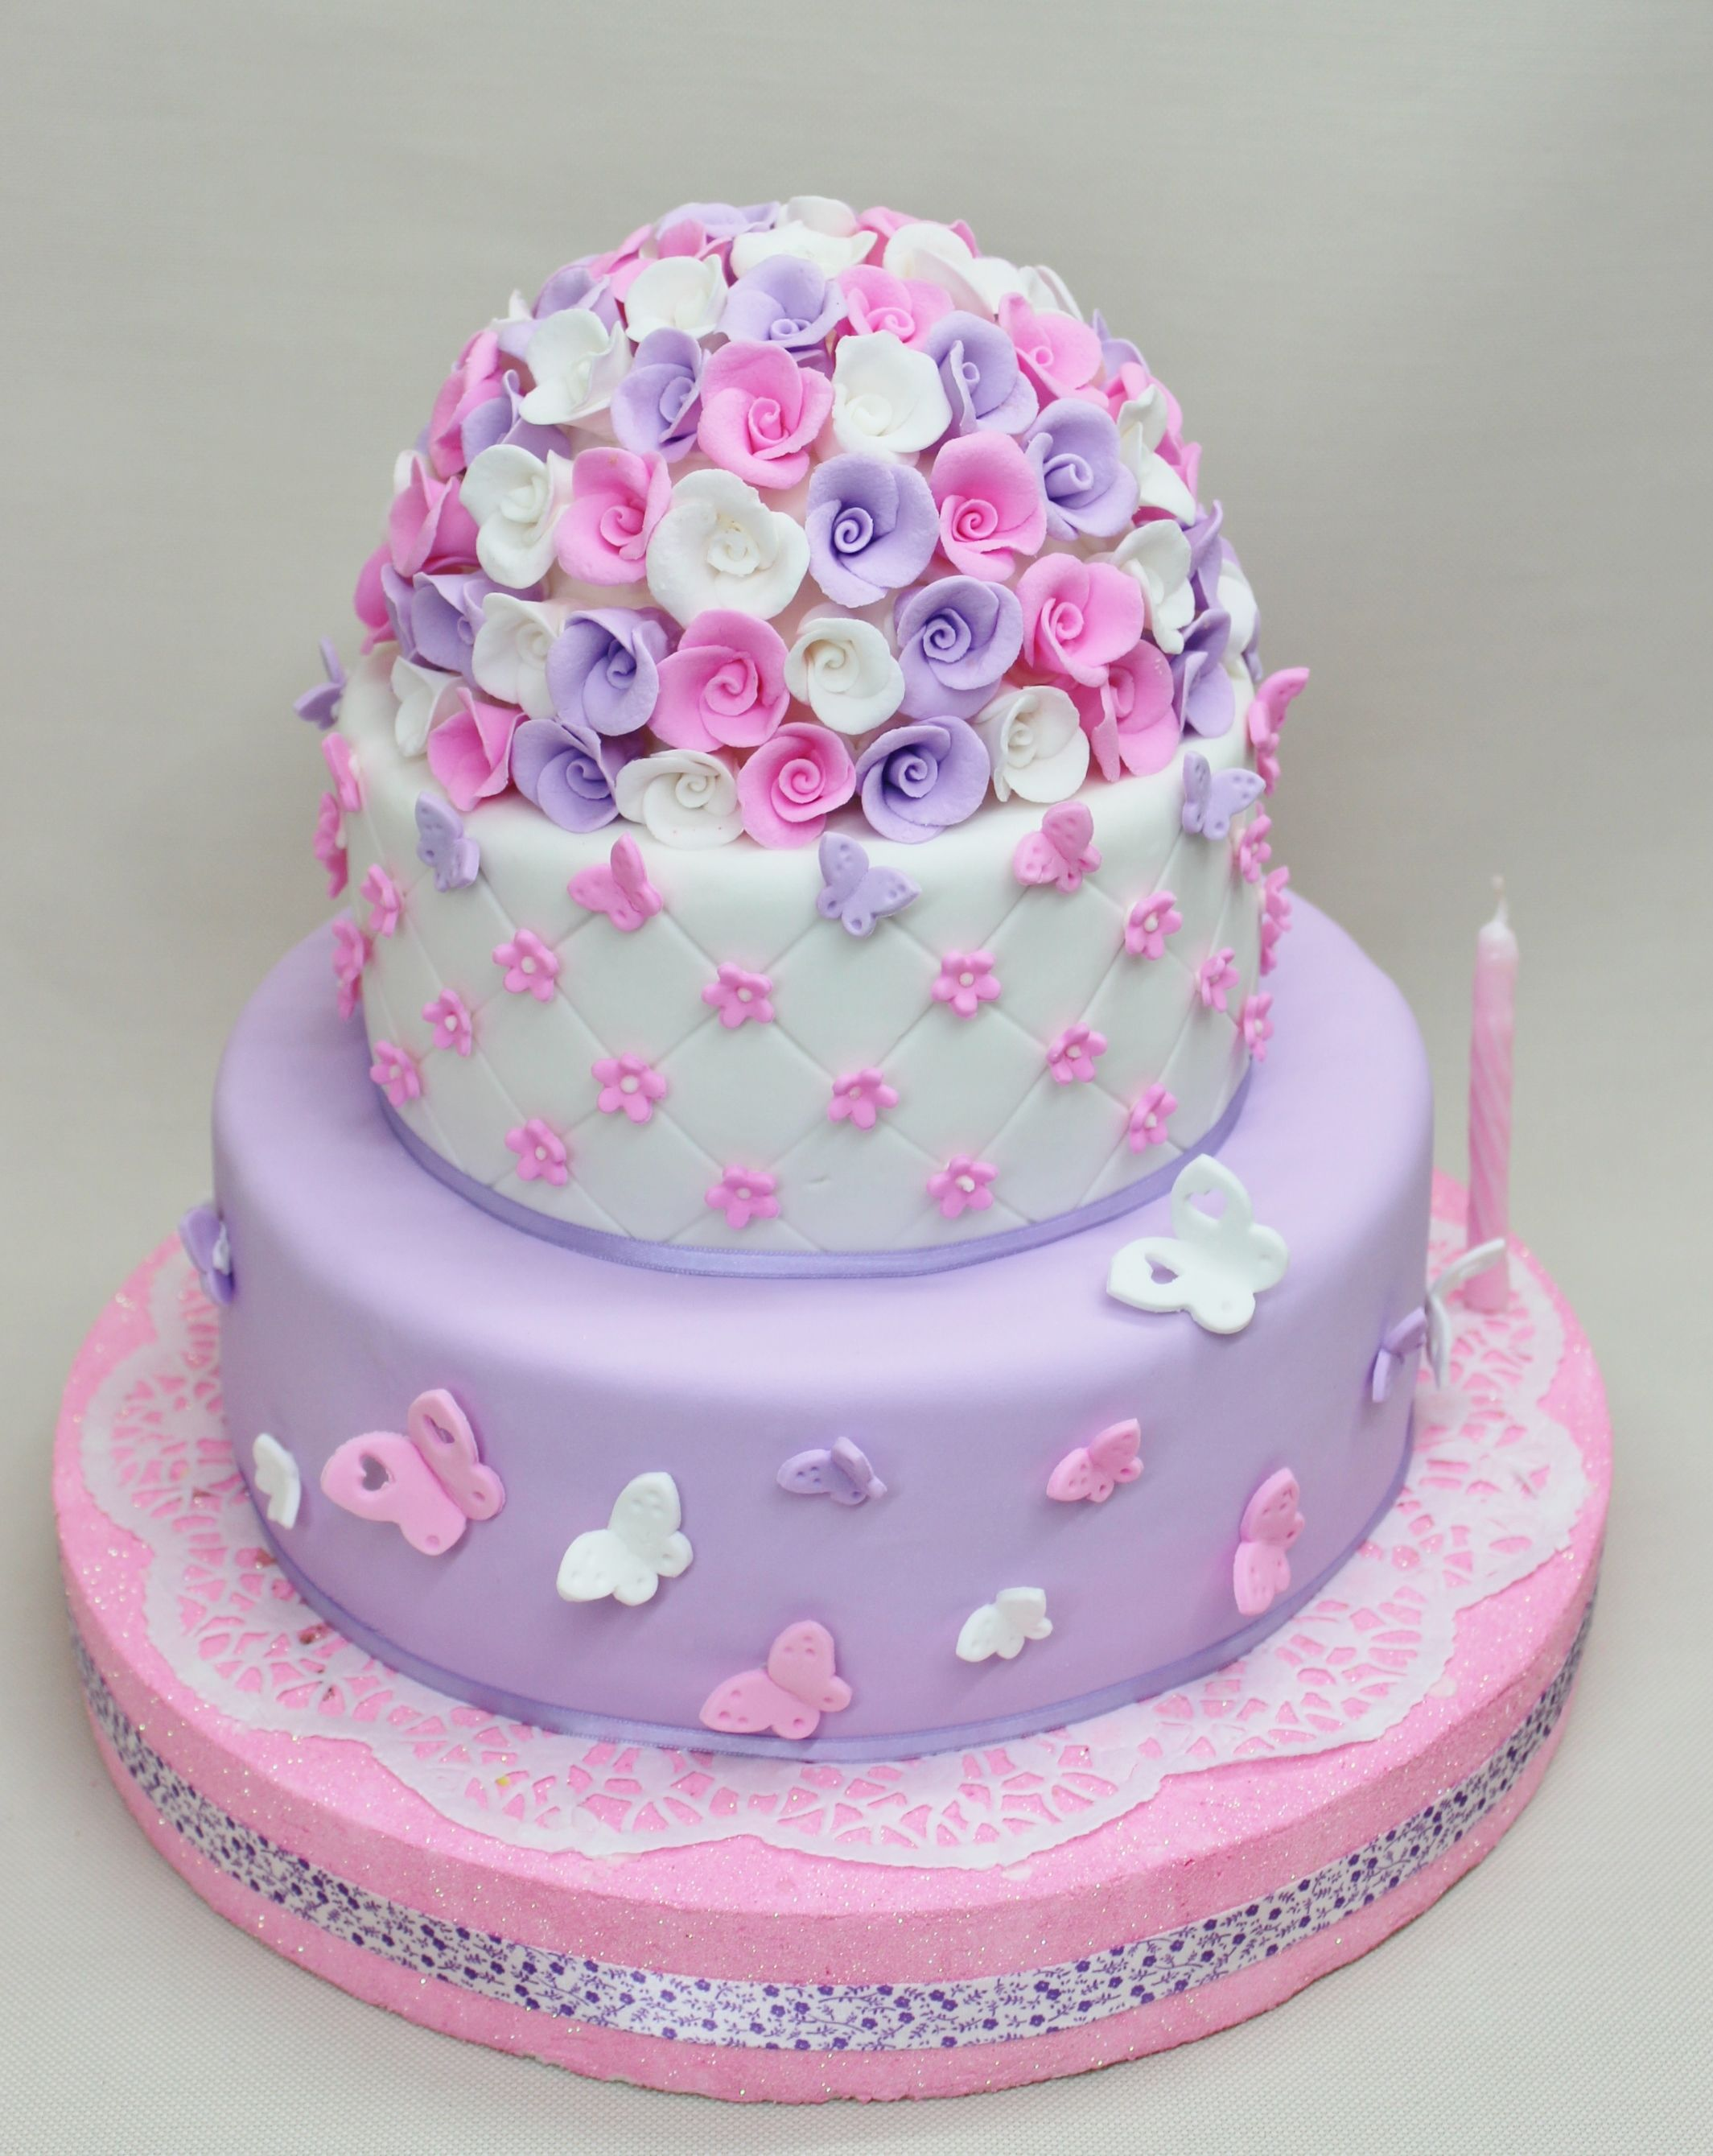 Flowers & Butterfly Cake by Violeta Glace Cakes